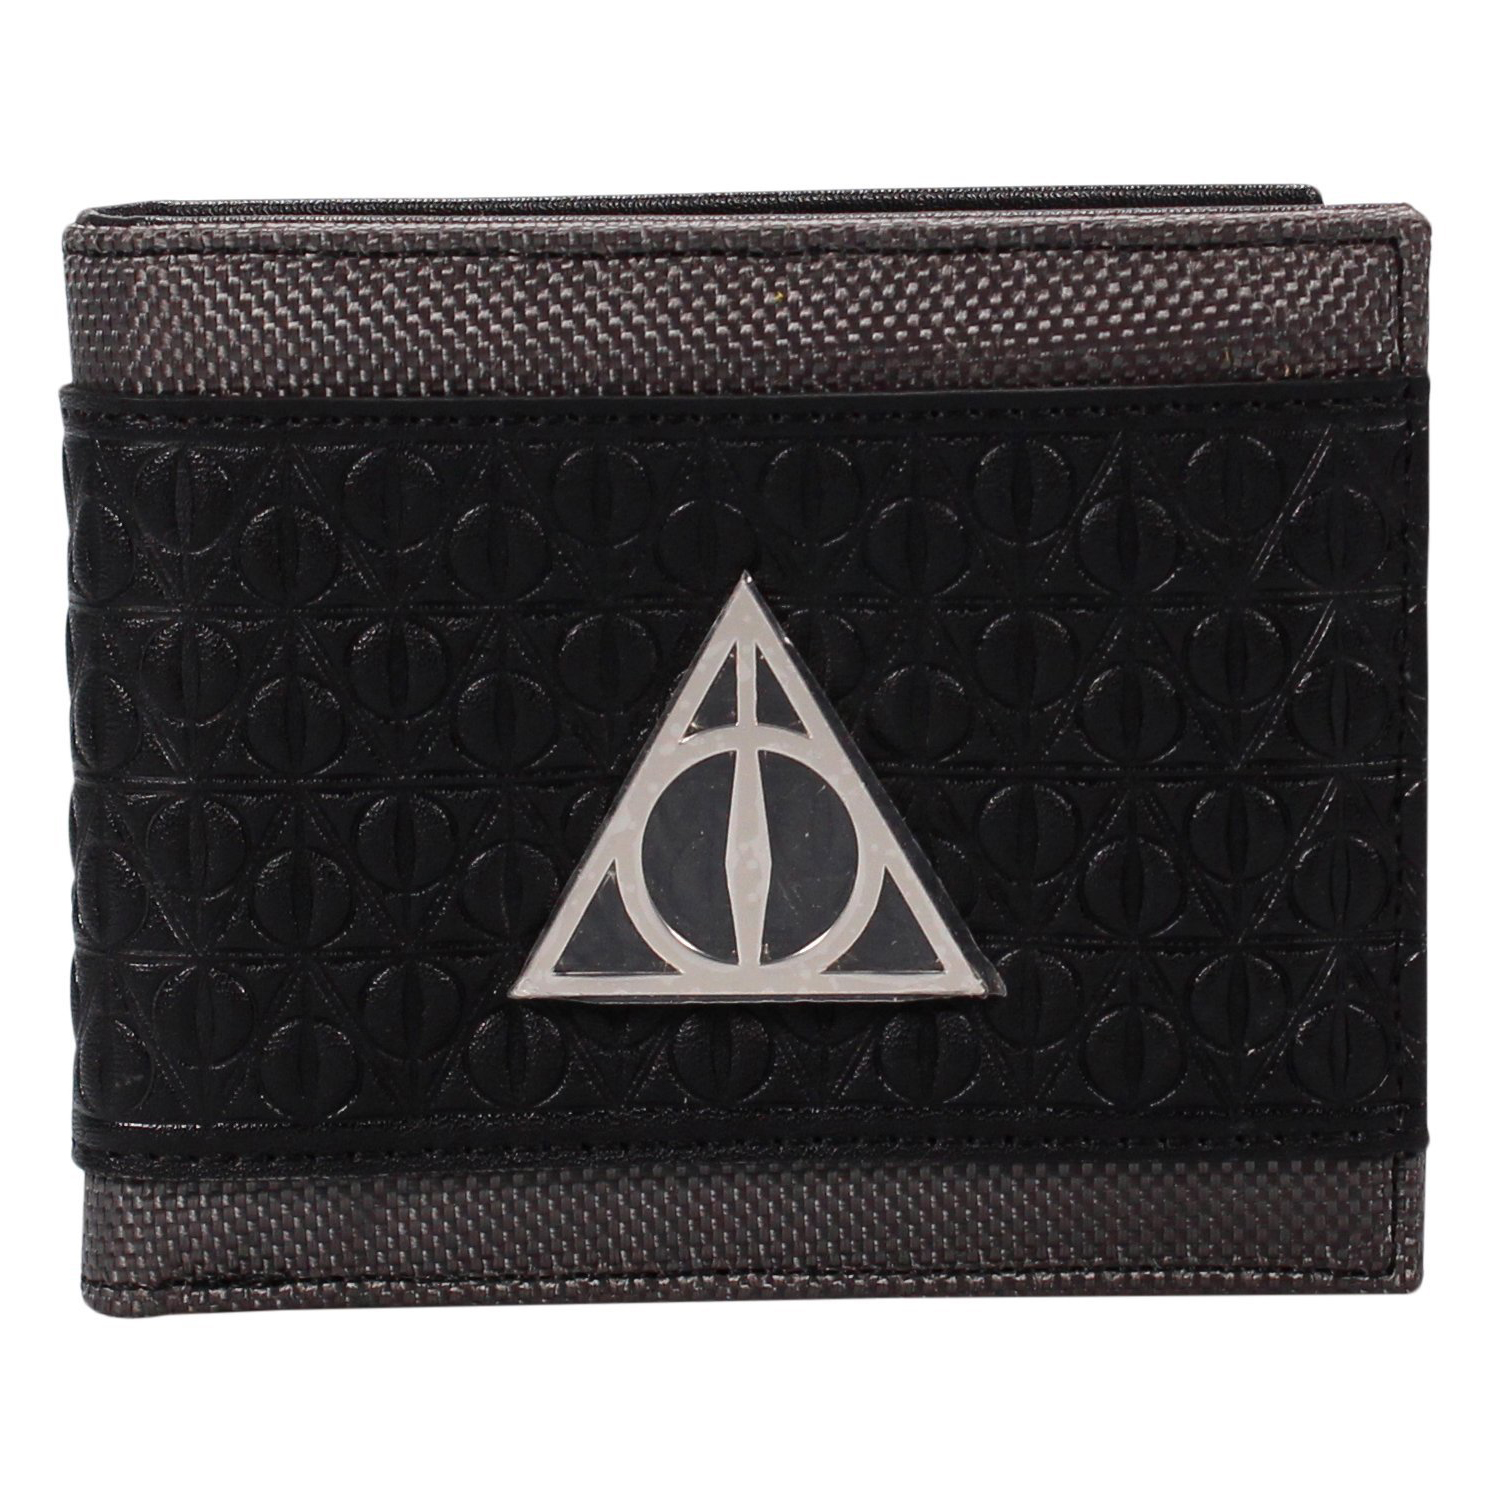 Harry Potter Deathly Hallows Wallet